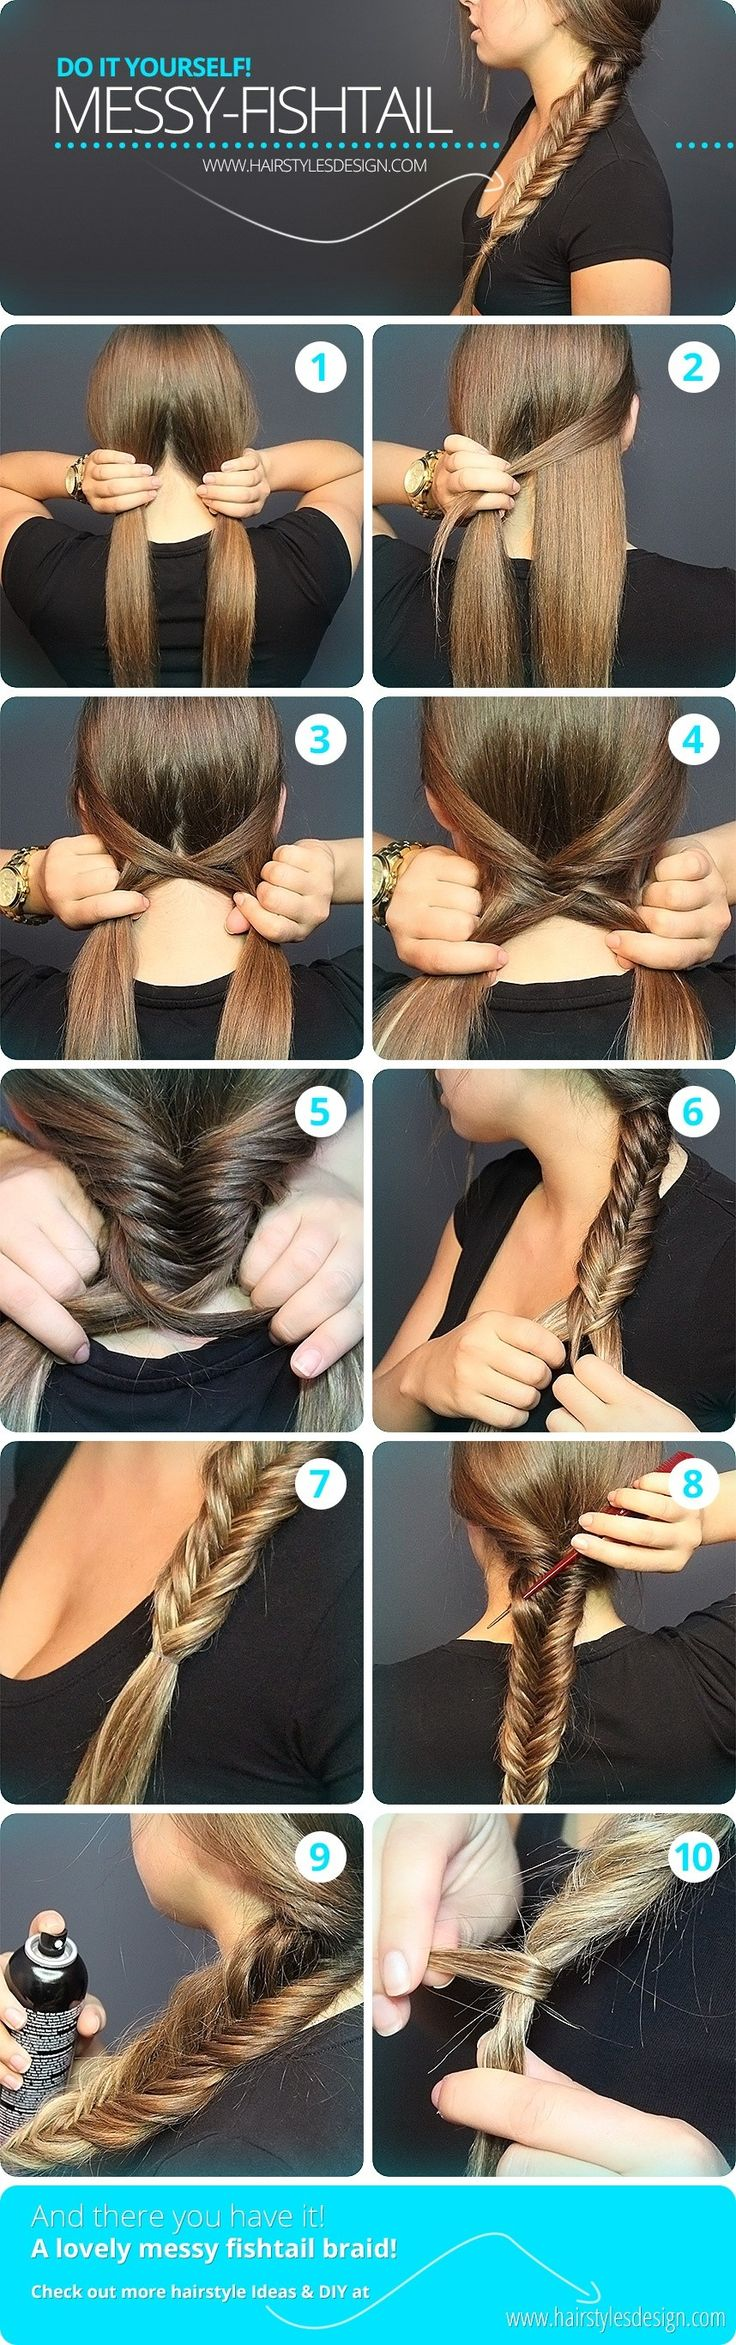 Do It Yourself Messy Fishtail Braid